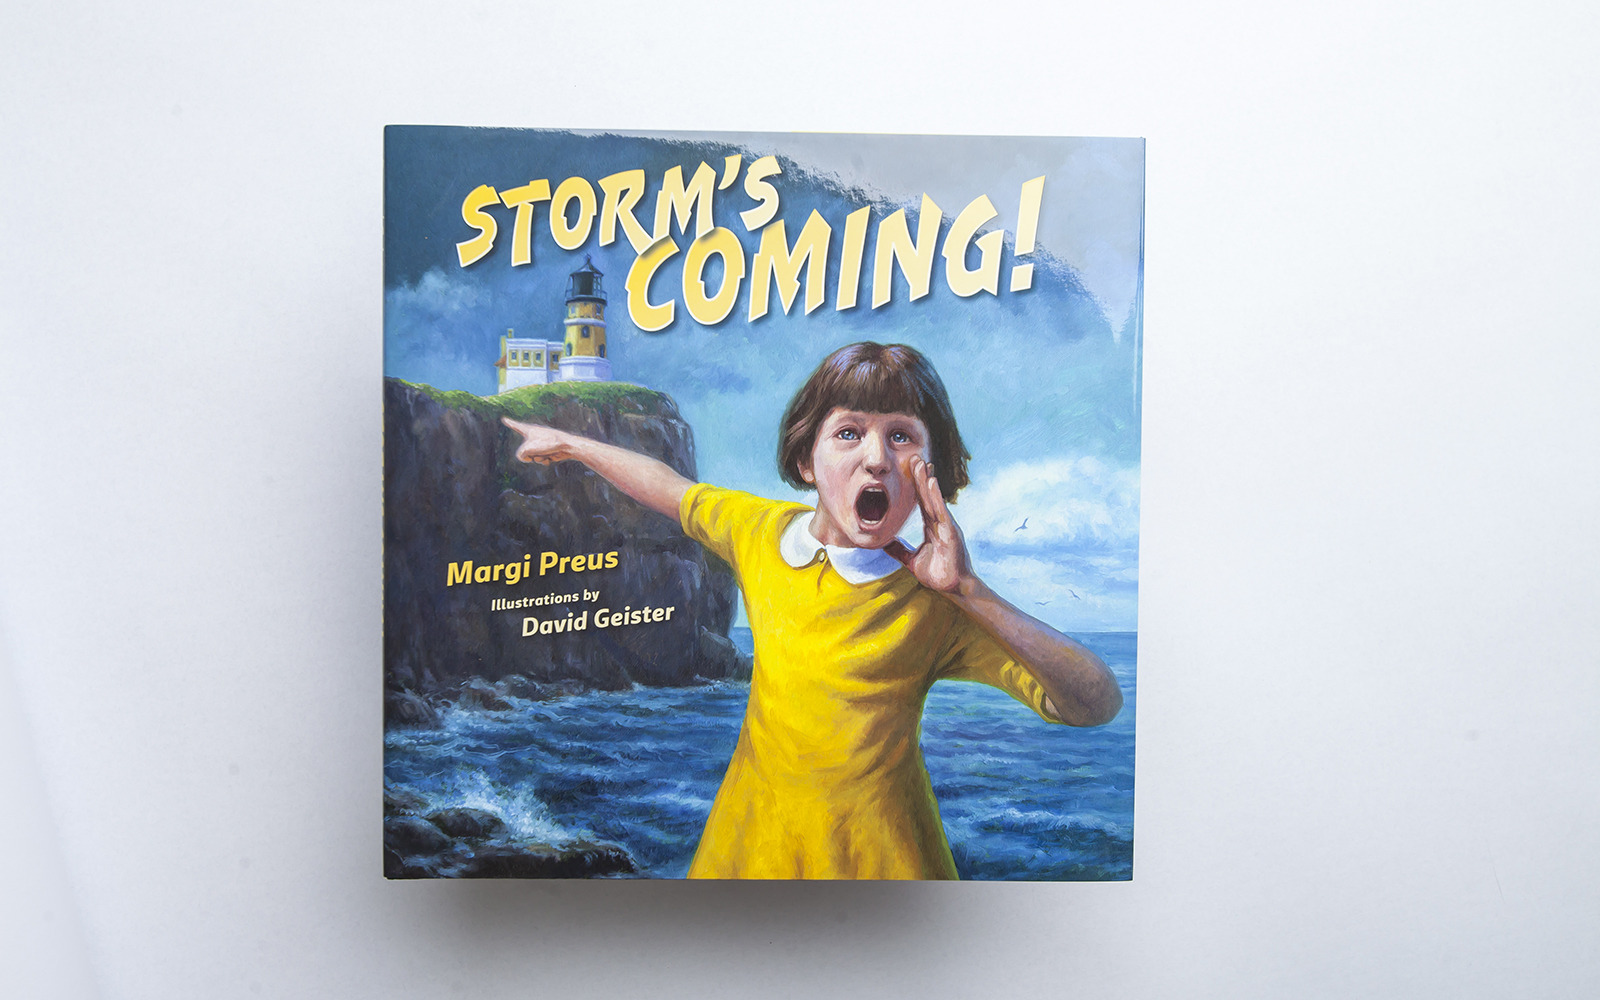 SONWA book Storm's Coming